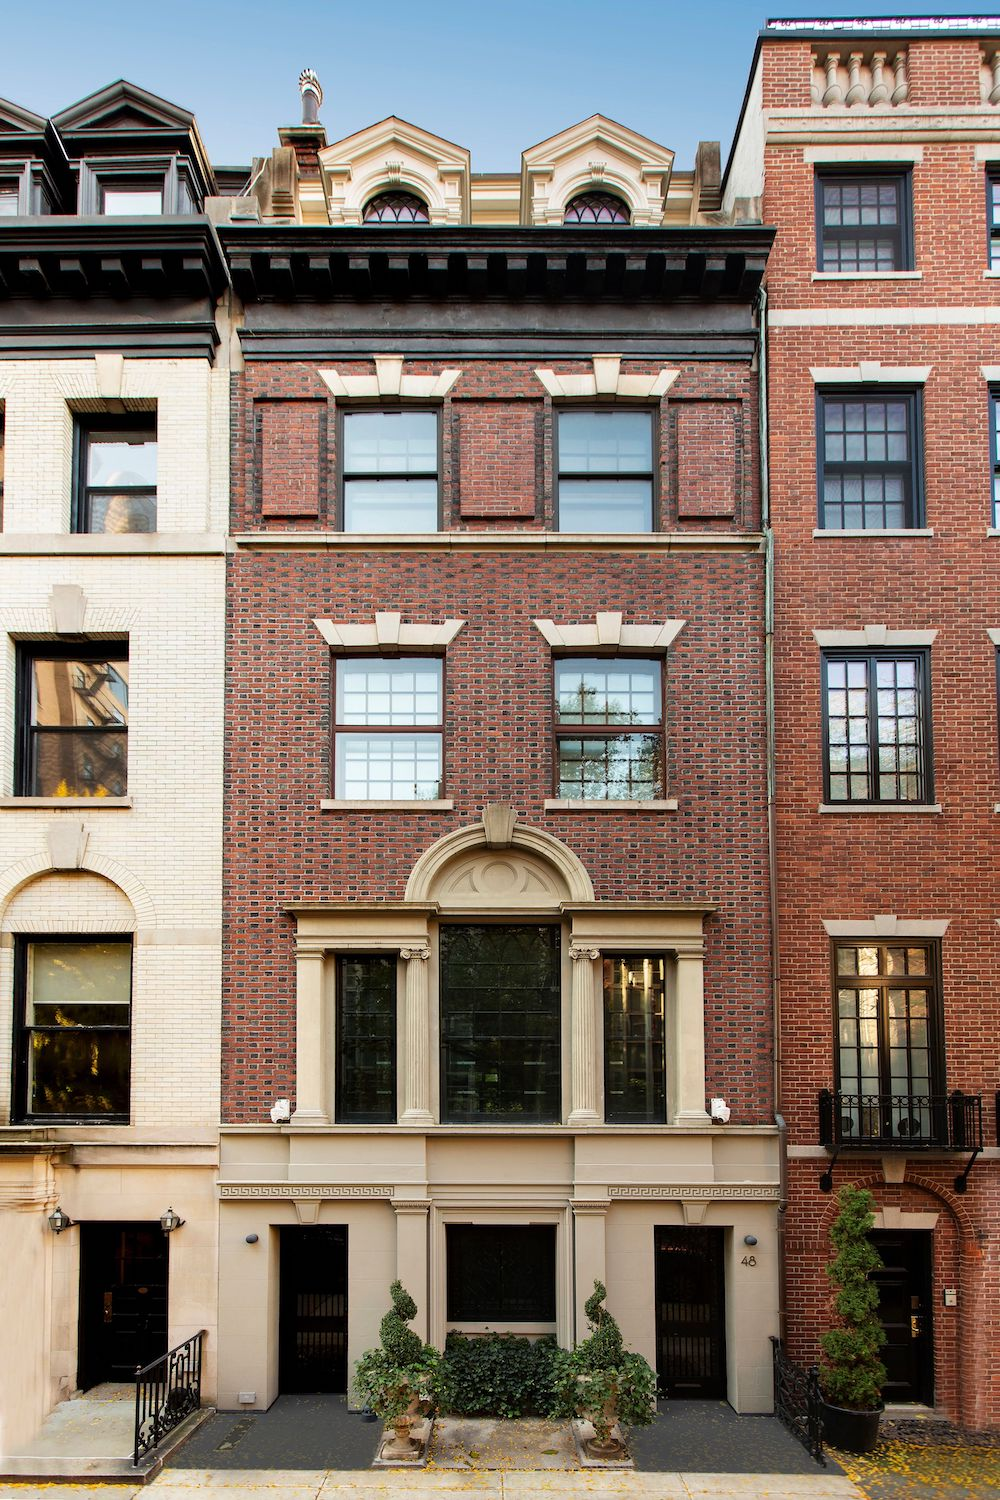 This $22 Million Upper East Side Townhouse Is a Rare Find